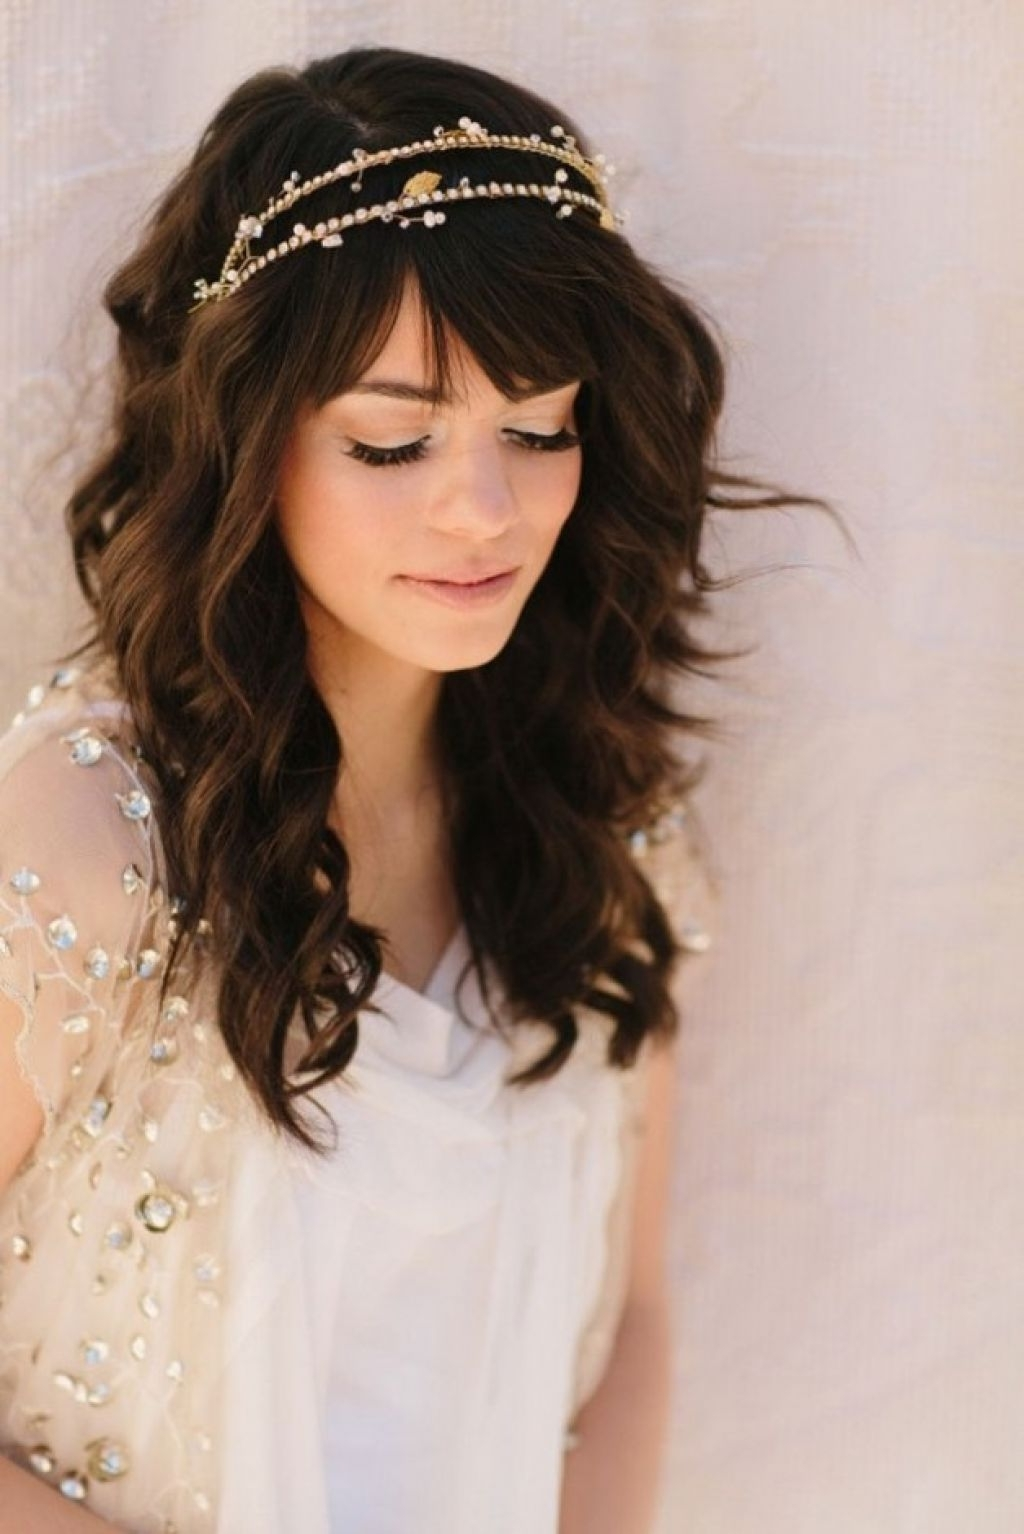 60+ Wedding & Bridal Hairstyle Ideas, Trends & Inspiration – The Xerxes Regarding Well Liked Wedding Hairstyles With Bangs (View 3 of 15)